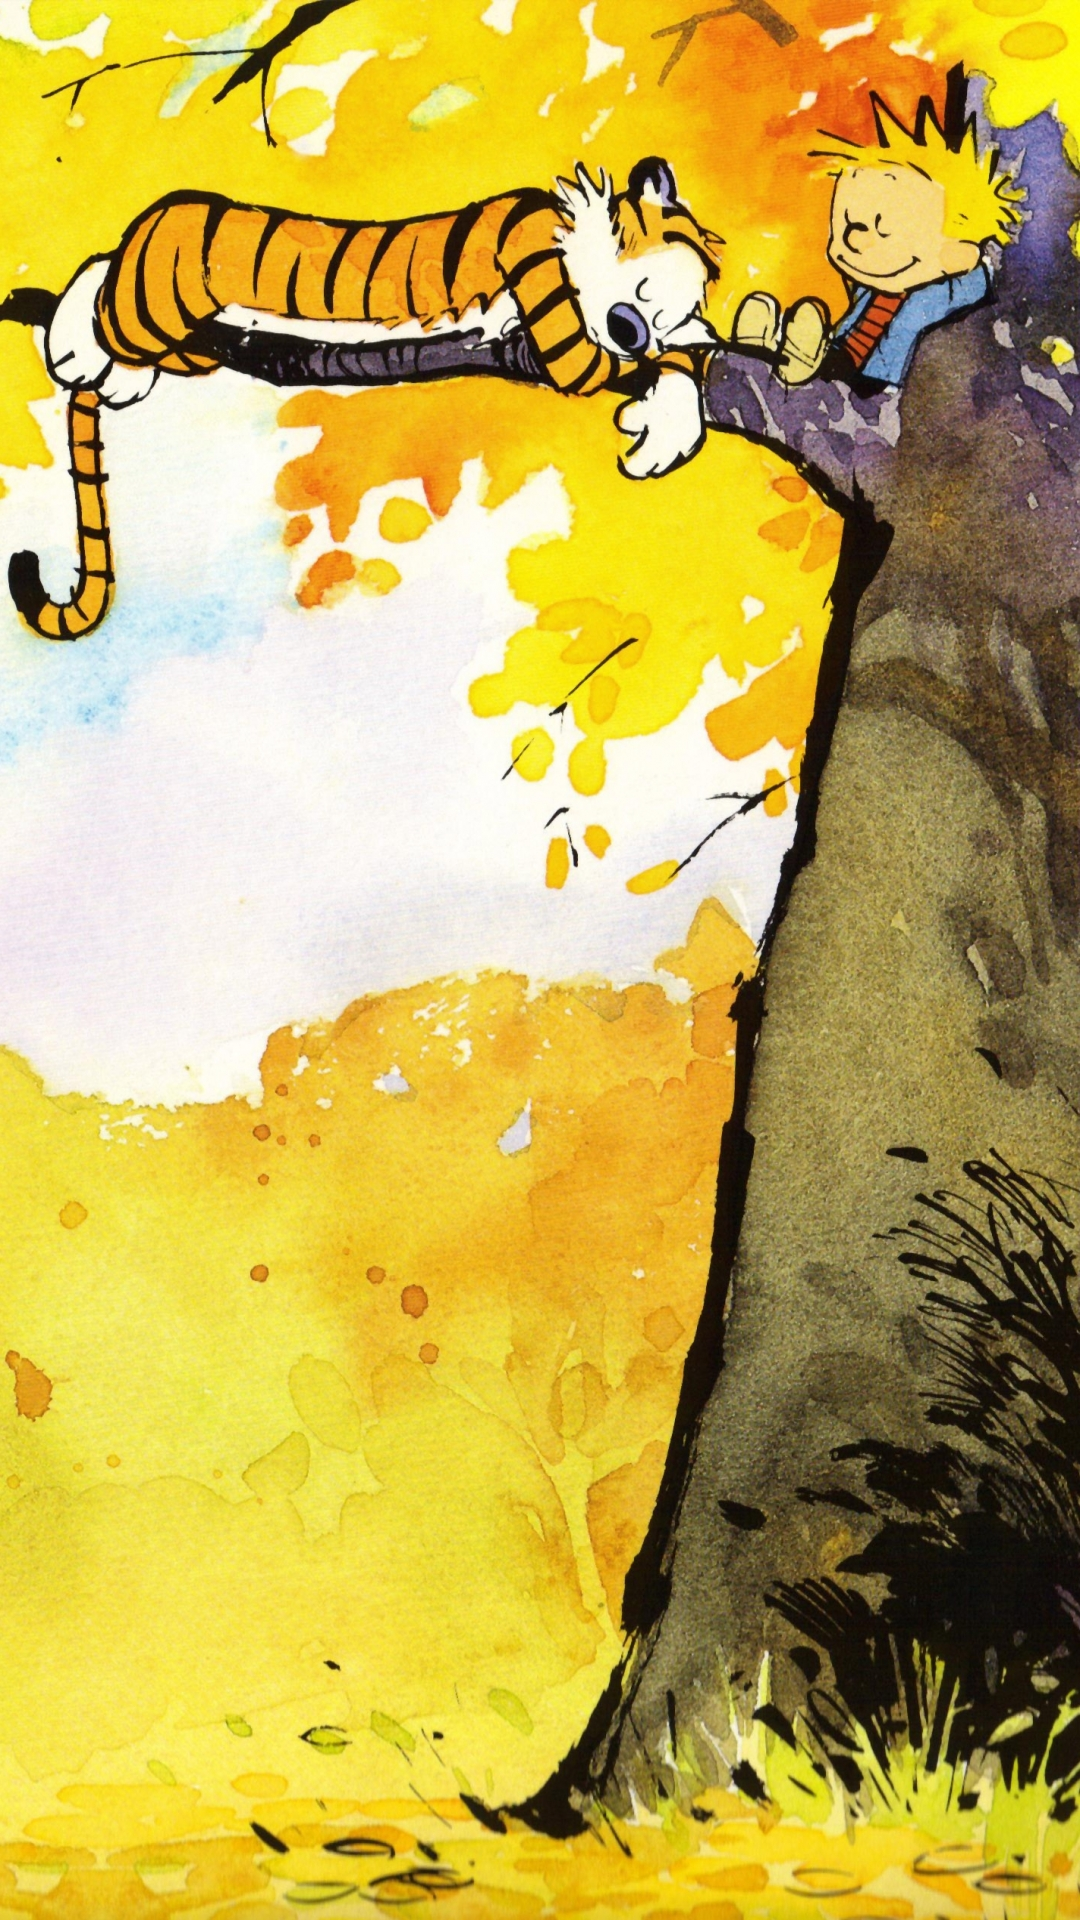 Calvin And Hobbes Wallpaper Quotes Calvin And Hobbes Iphone Wallpaper For Desktop